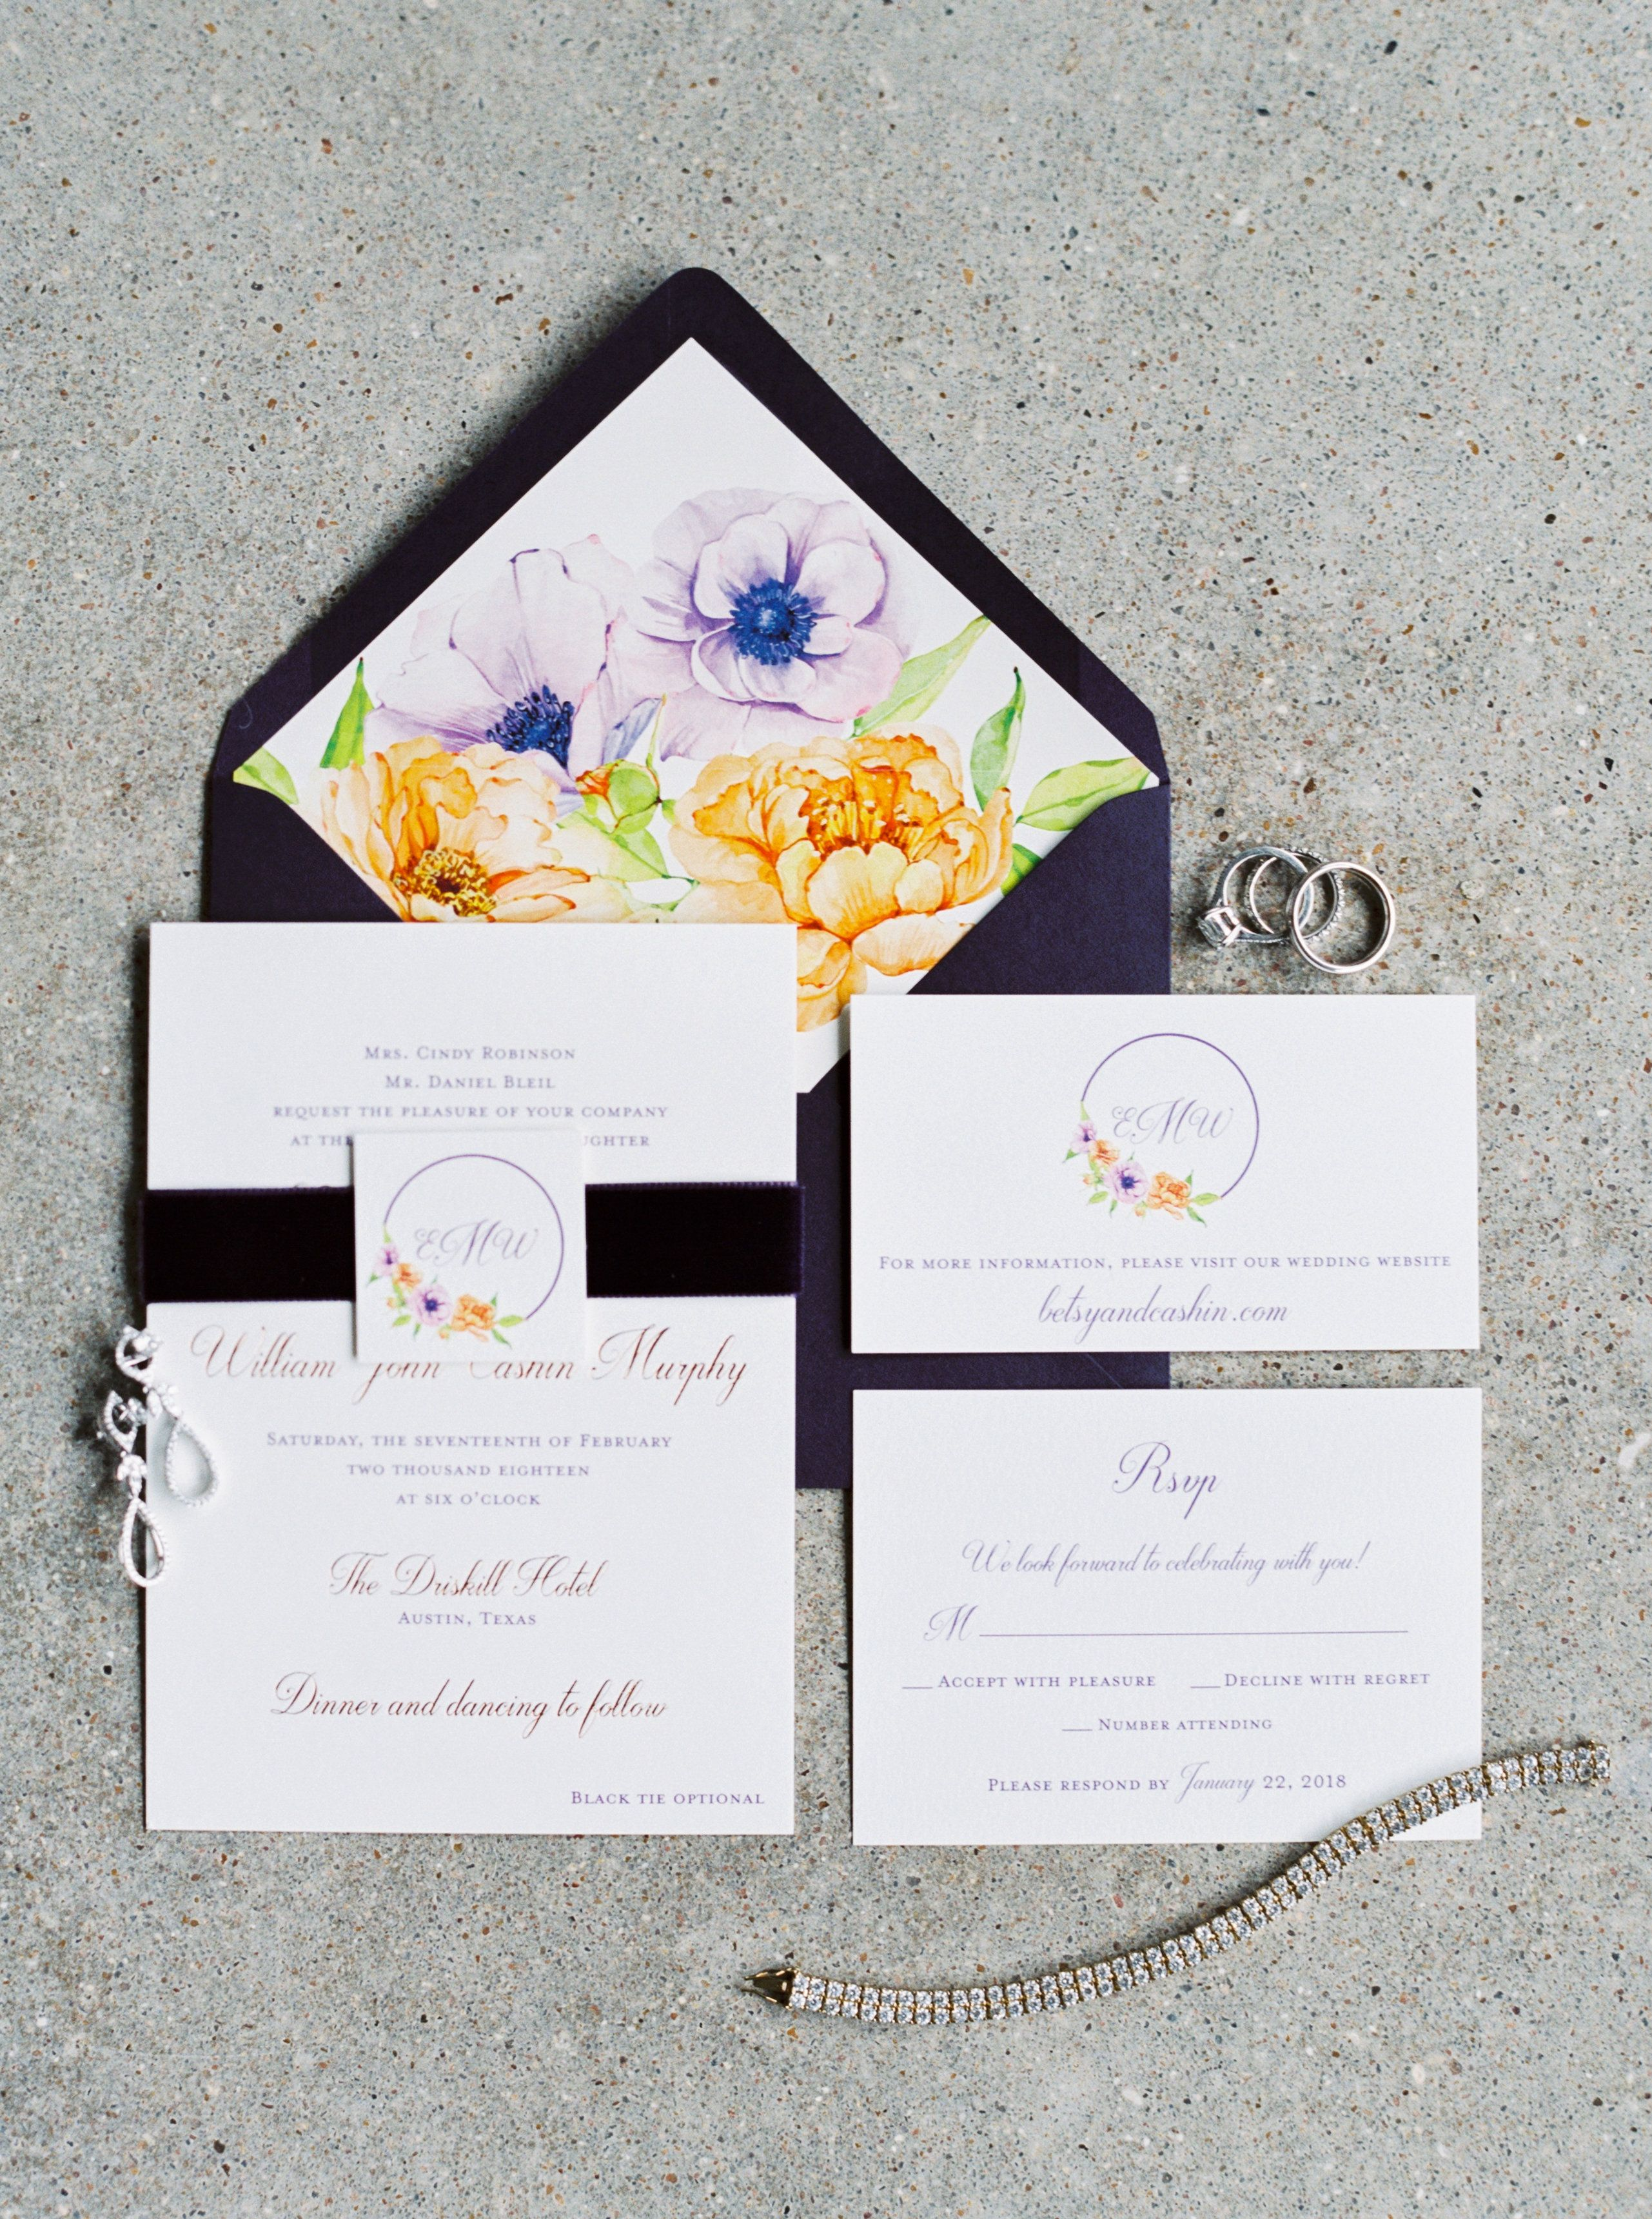 Wedding invitation set with velvet ribbon by The Inviting Pear